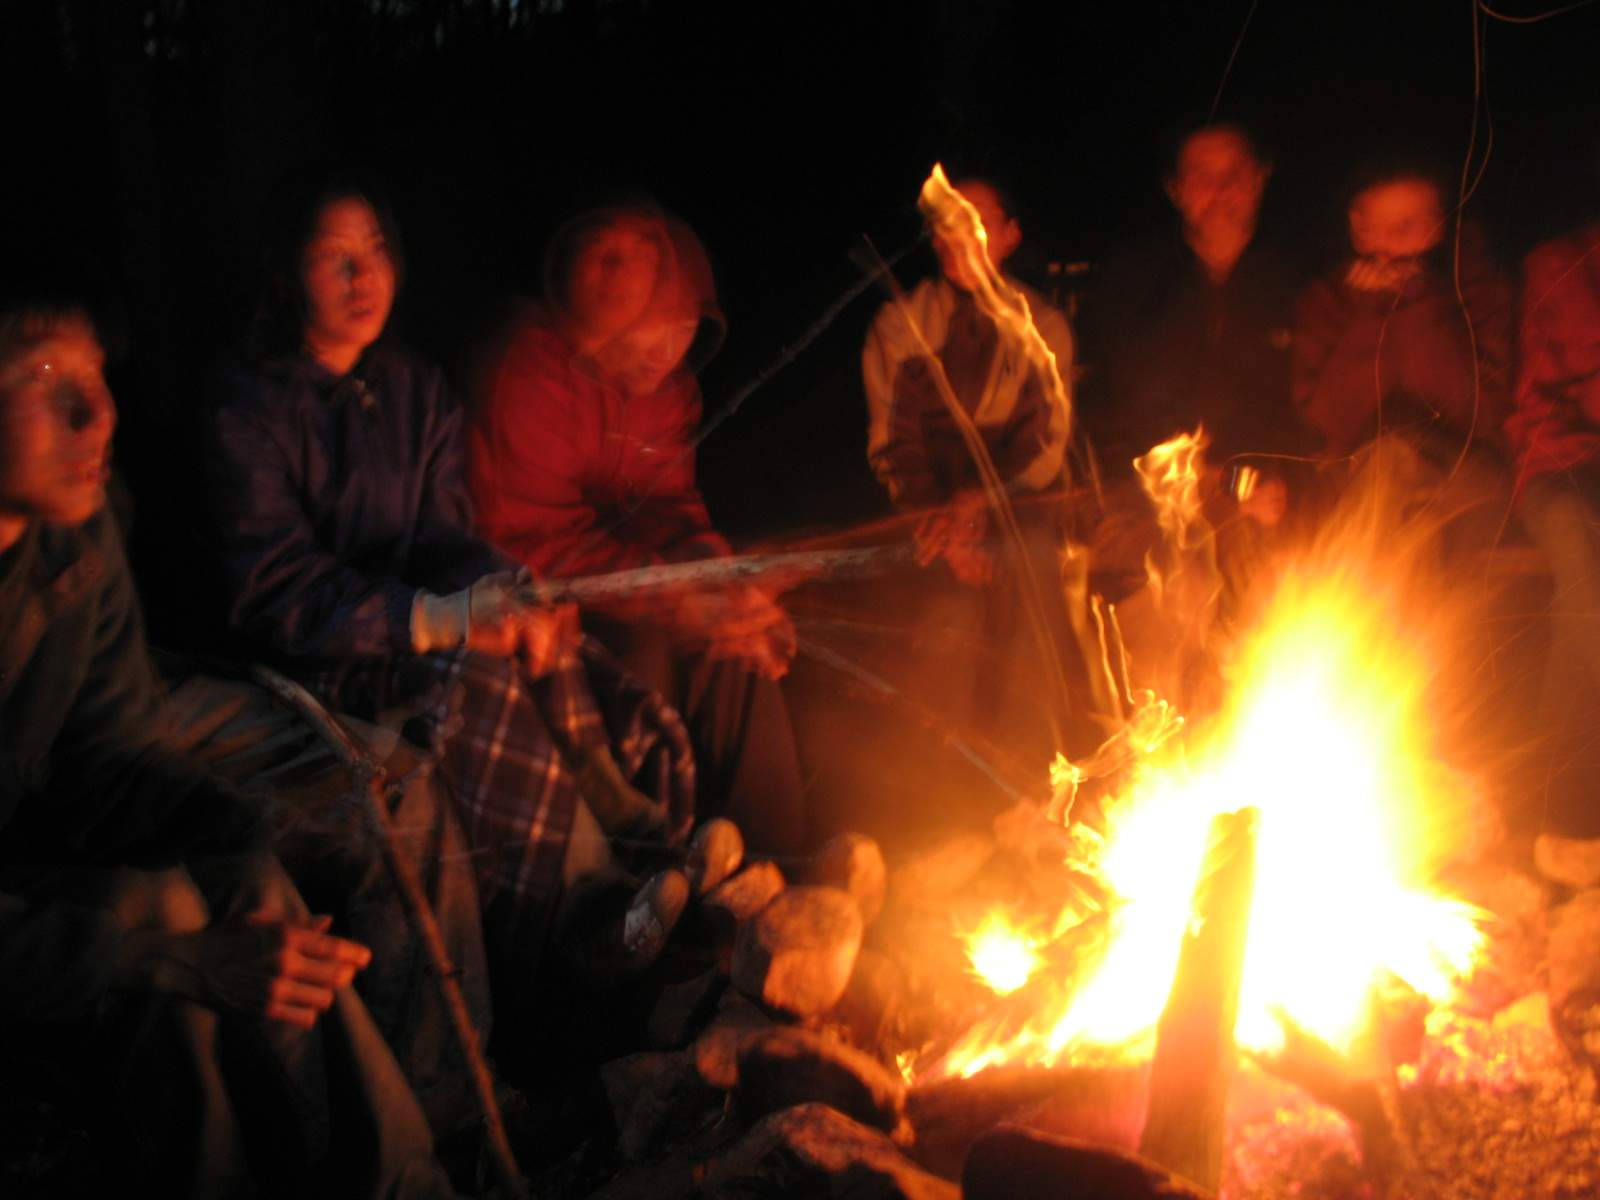 Photo copyright @ http://www.sccs.swarthmore.edu/users/06/adem/pictures/hickory/images/campfire%203.jpg